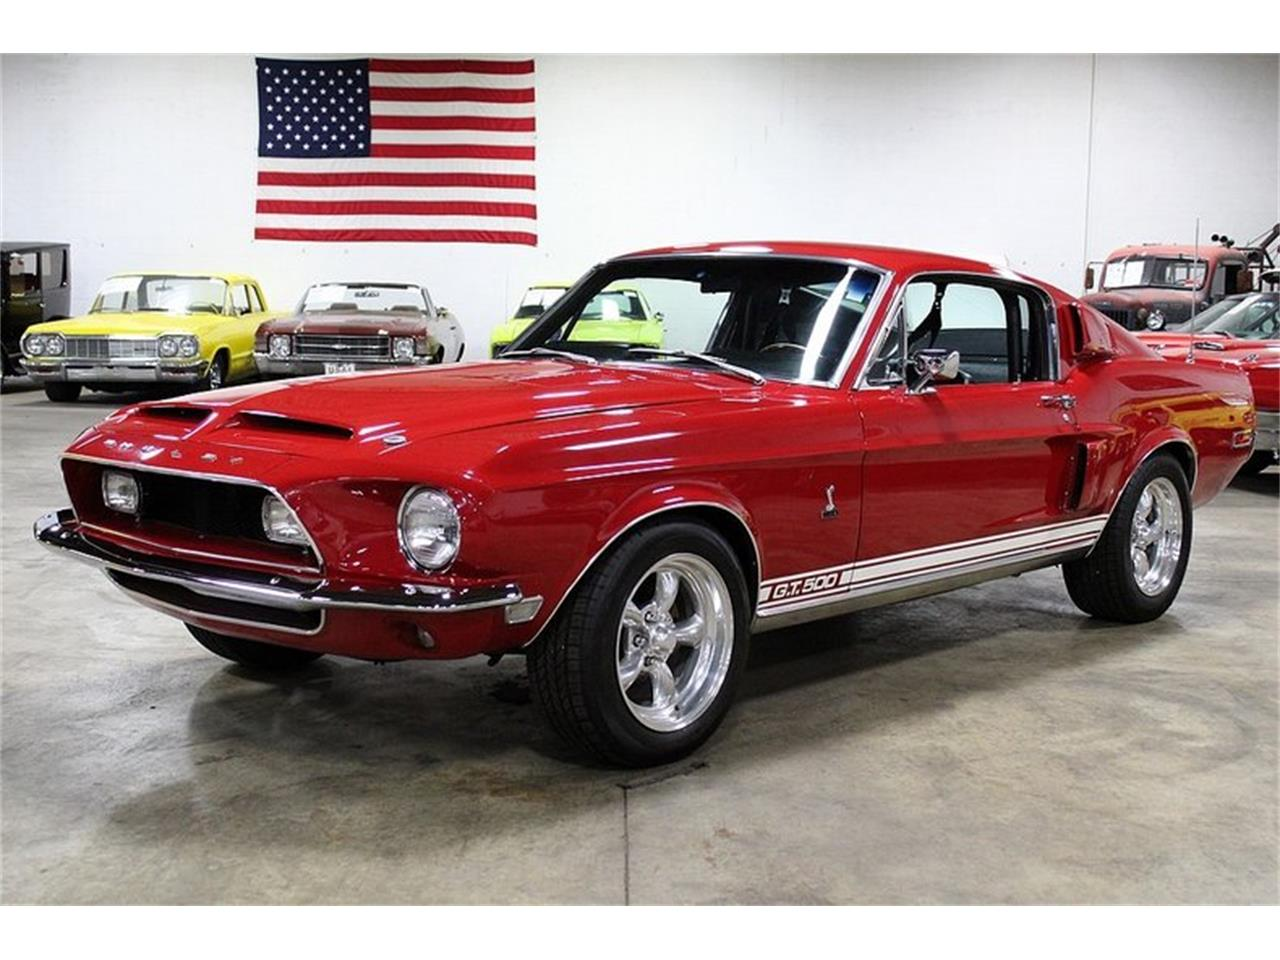 68 Shelby Gt500 >> 1968 Shelby Gt500 For Sale Classiccars Com Cc 1129250